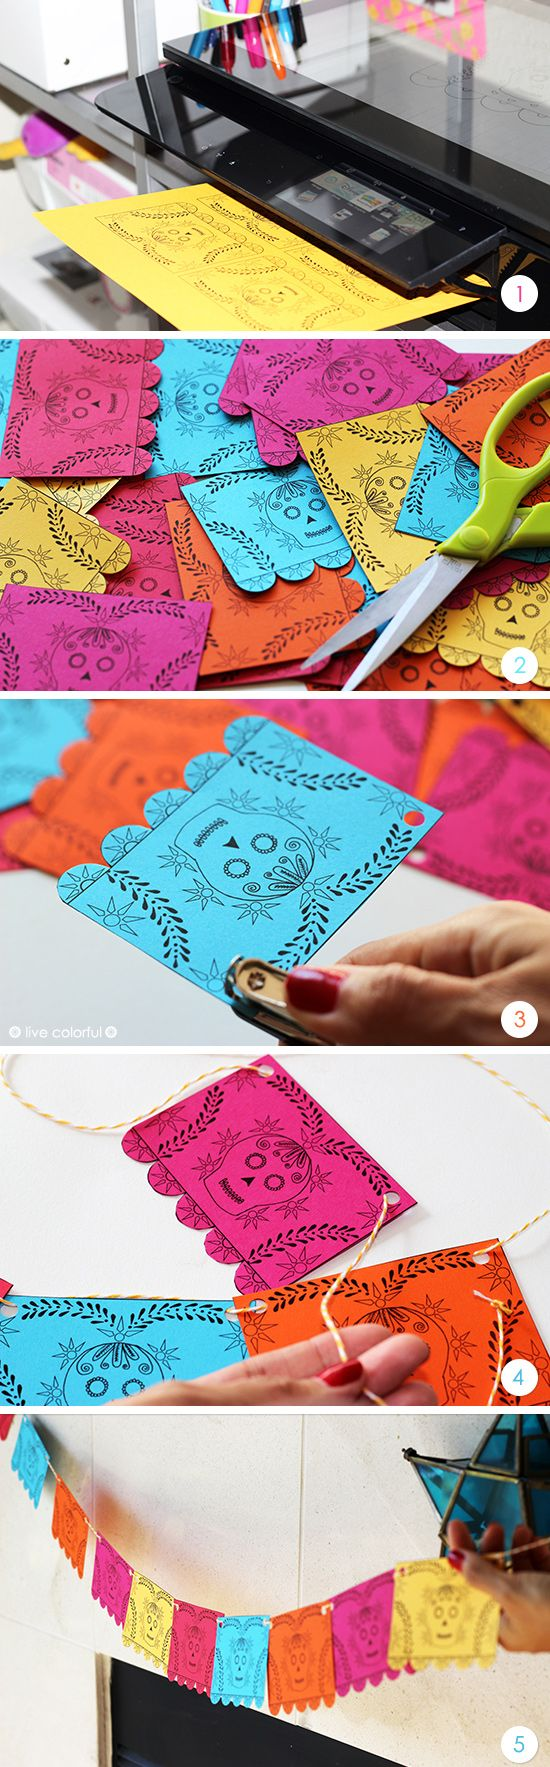 Free Printable Day Of The Dead Mini Papel Picado Live Colorful